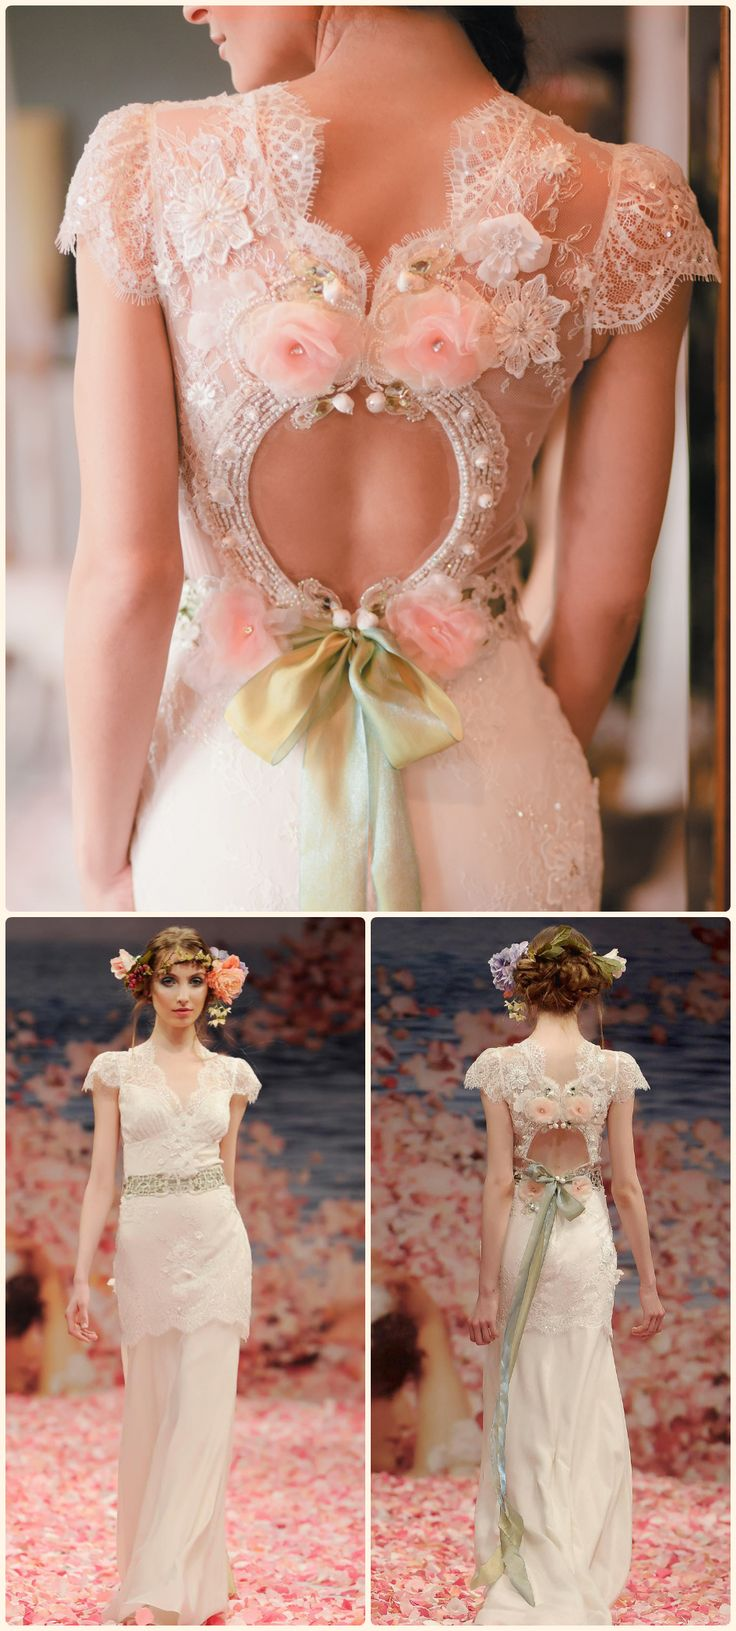 A Beautiful Bride, dress by Claire Pettibone. Can be found here: http://www.clairepettibone.com/bridal/?cp=gowns/beauty